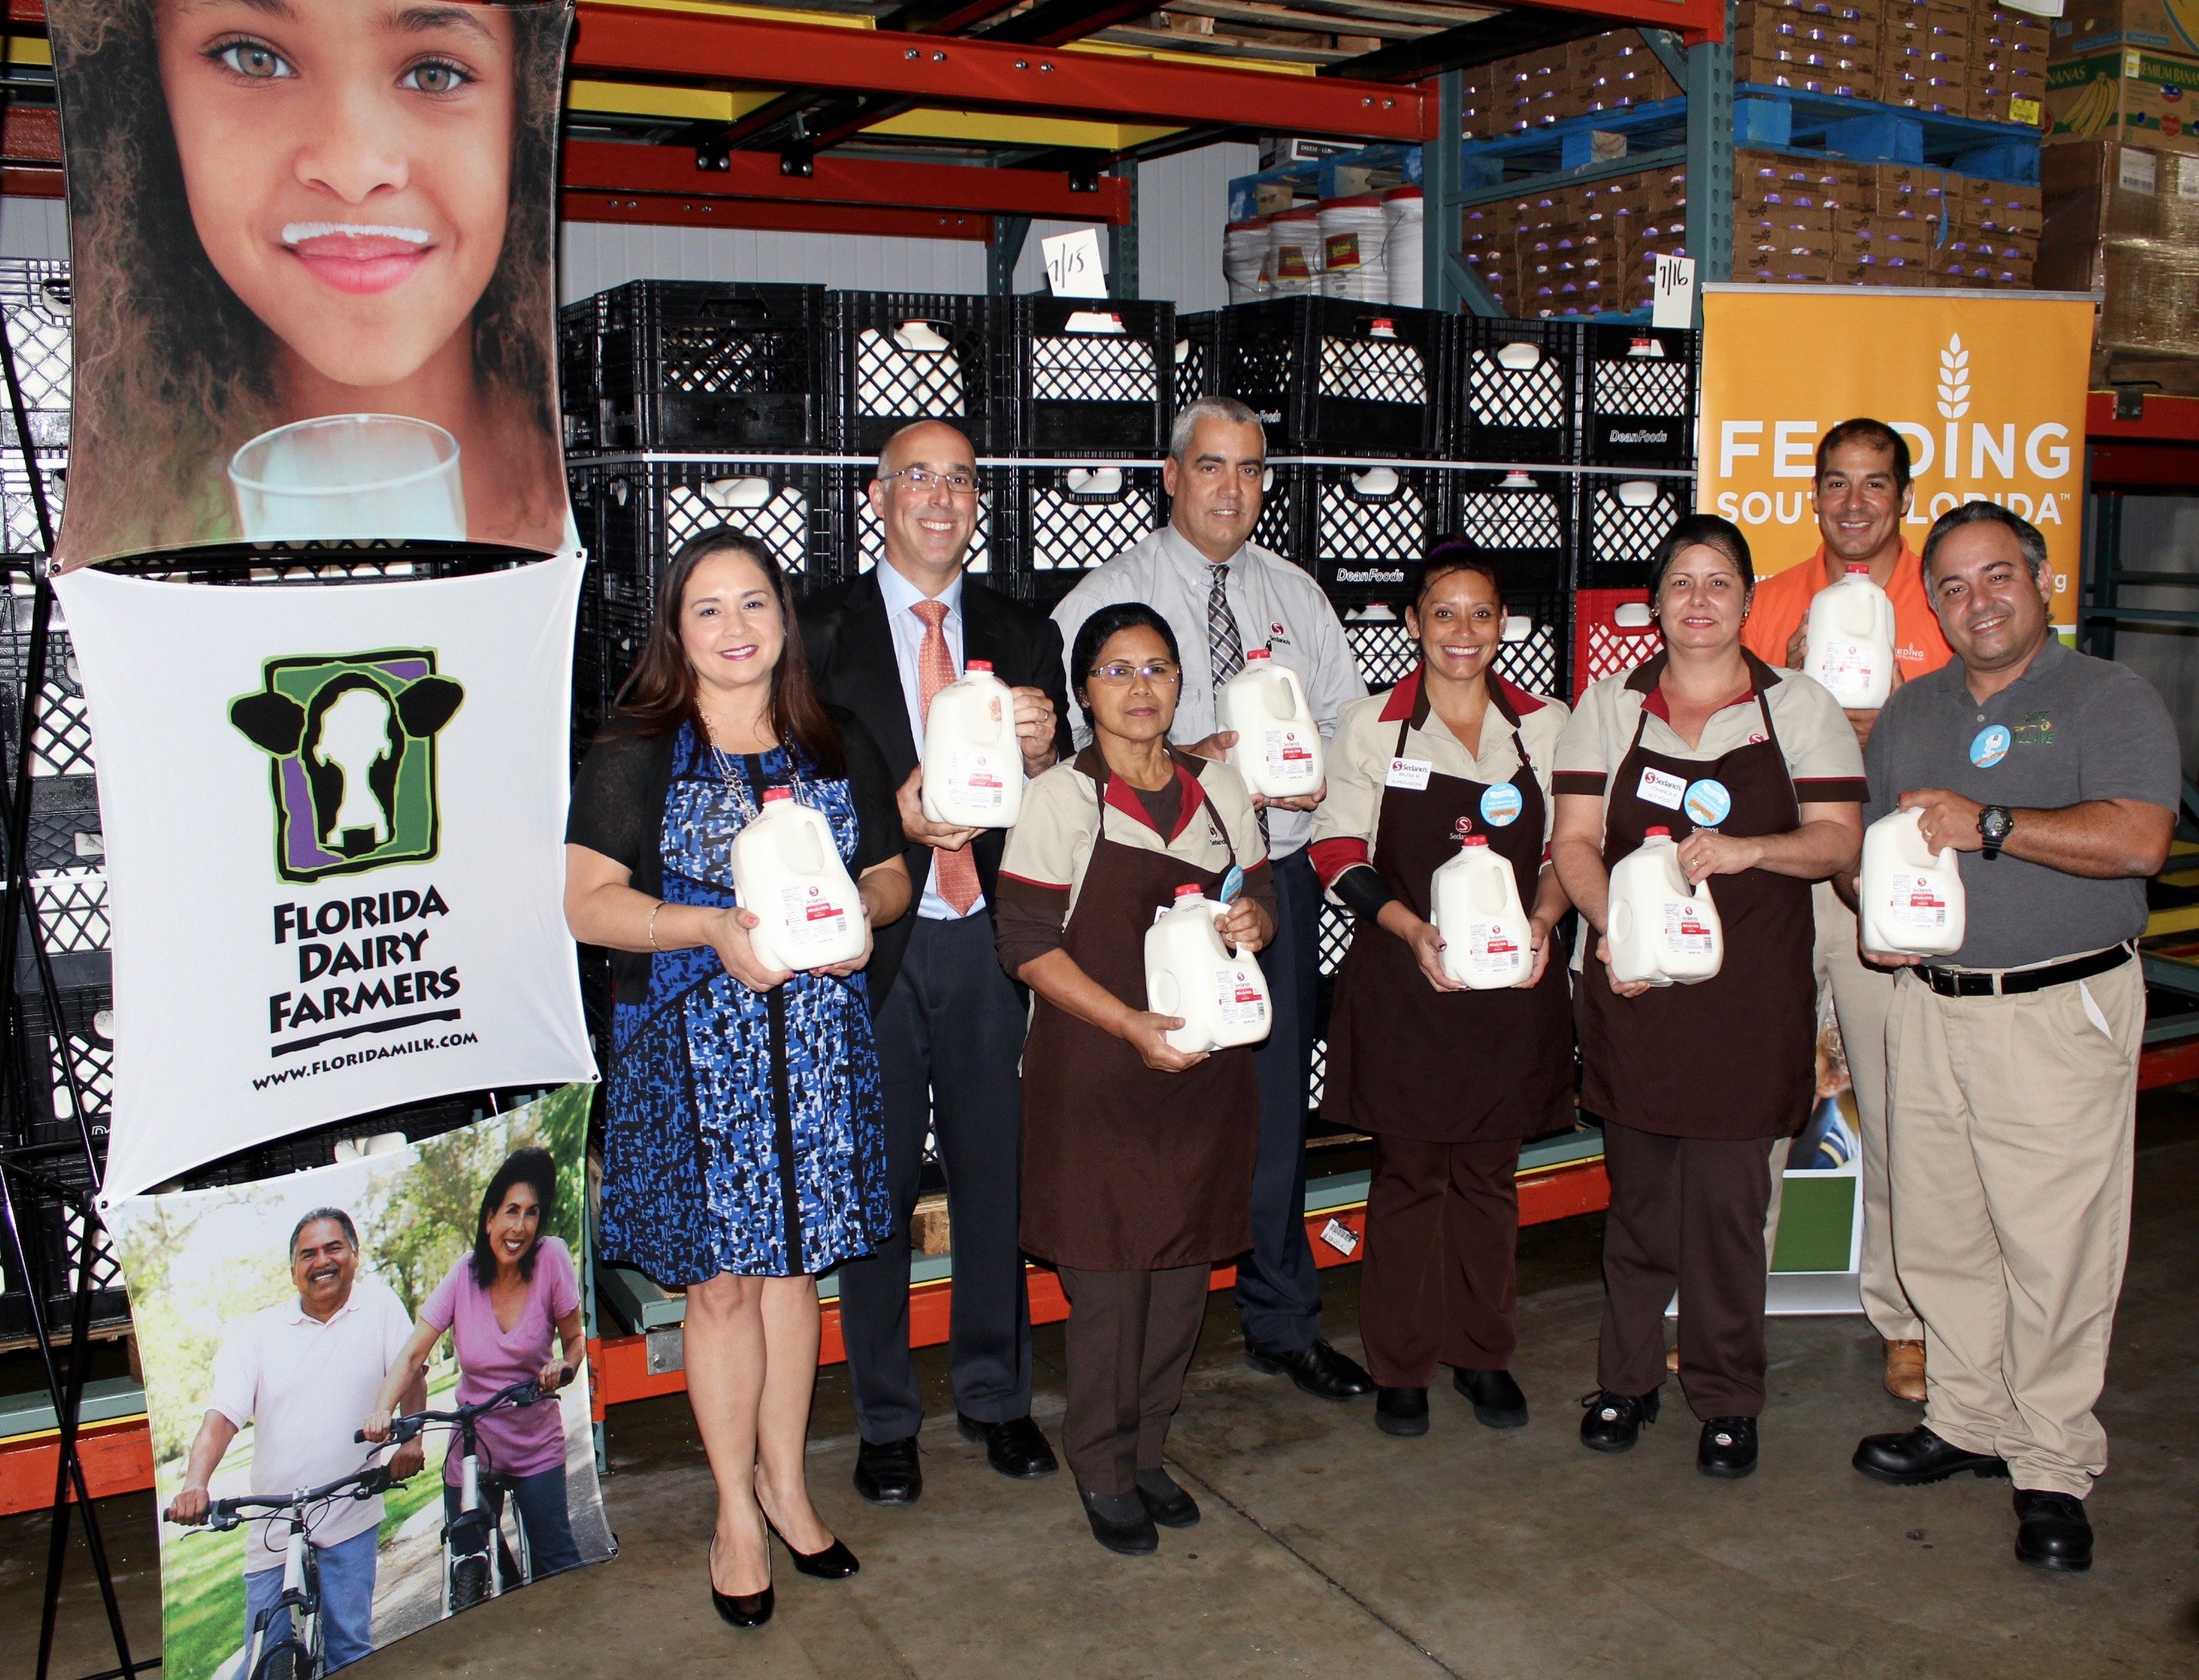 Feeding South Florida® Board Members, Community Leaders & Elected Officials Celebrate End of  The Great American Milk Drive, with Nearly 6,000 Gallons of Milk Donated to Benefit Families in Need